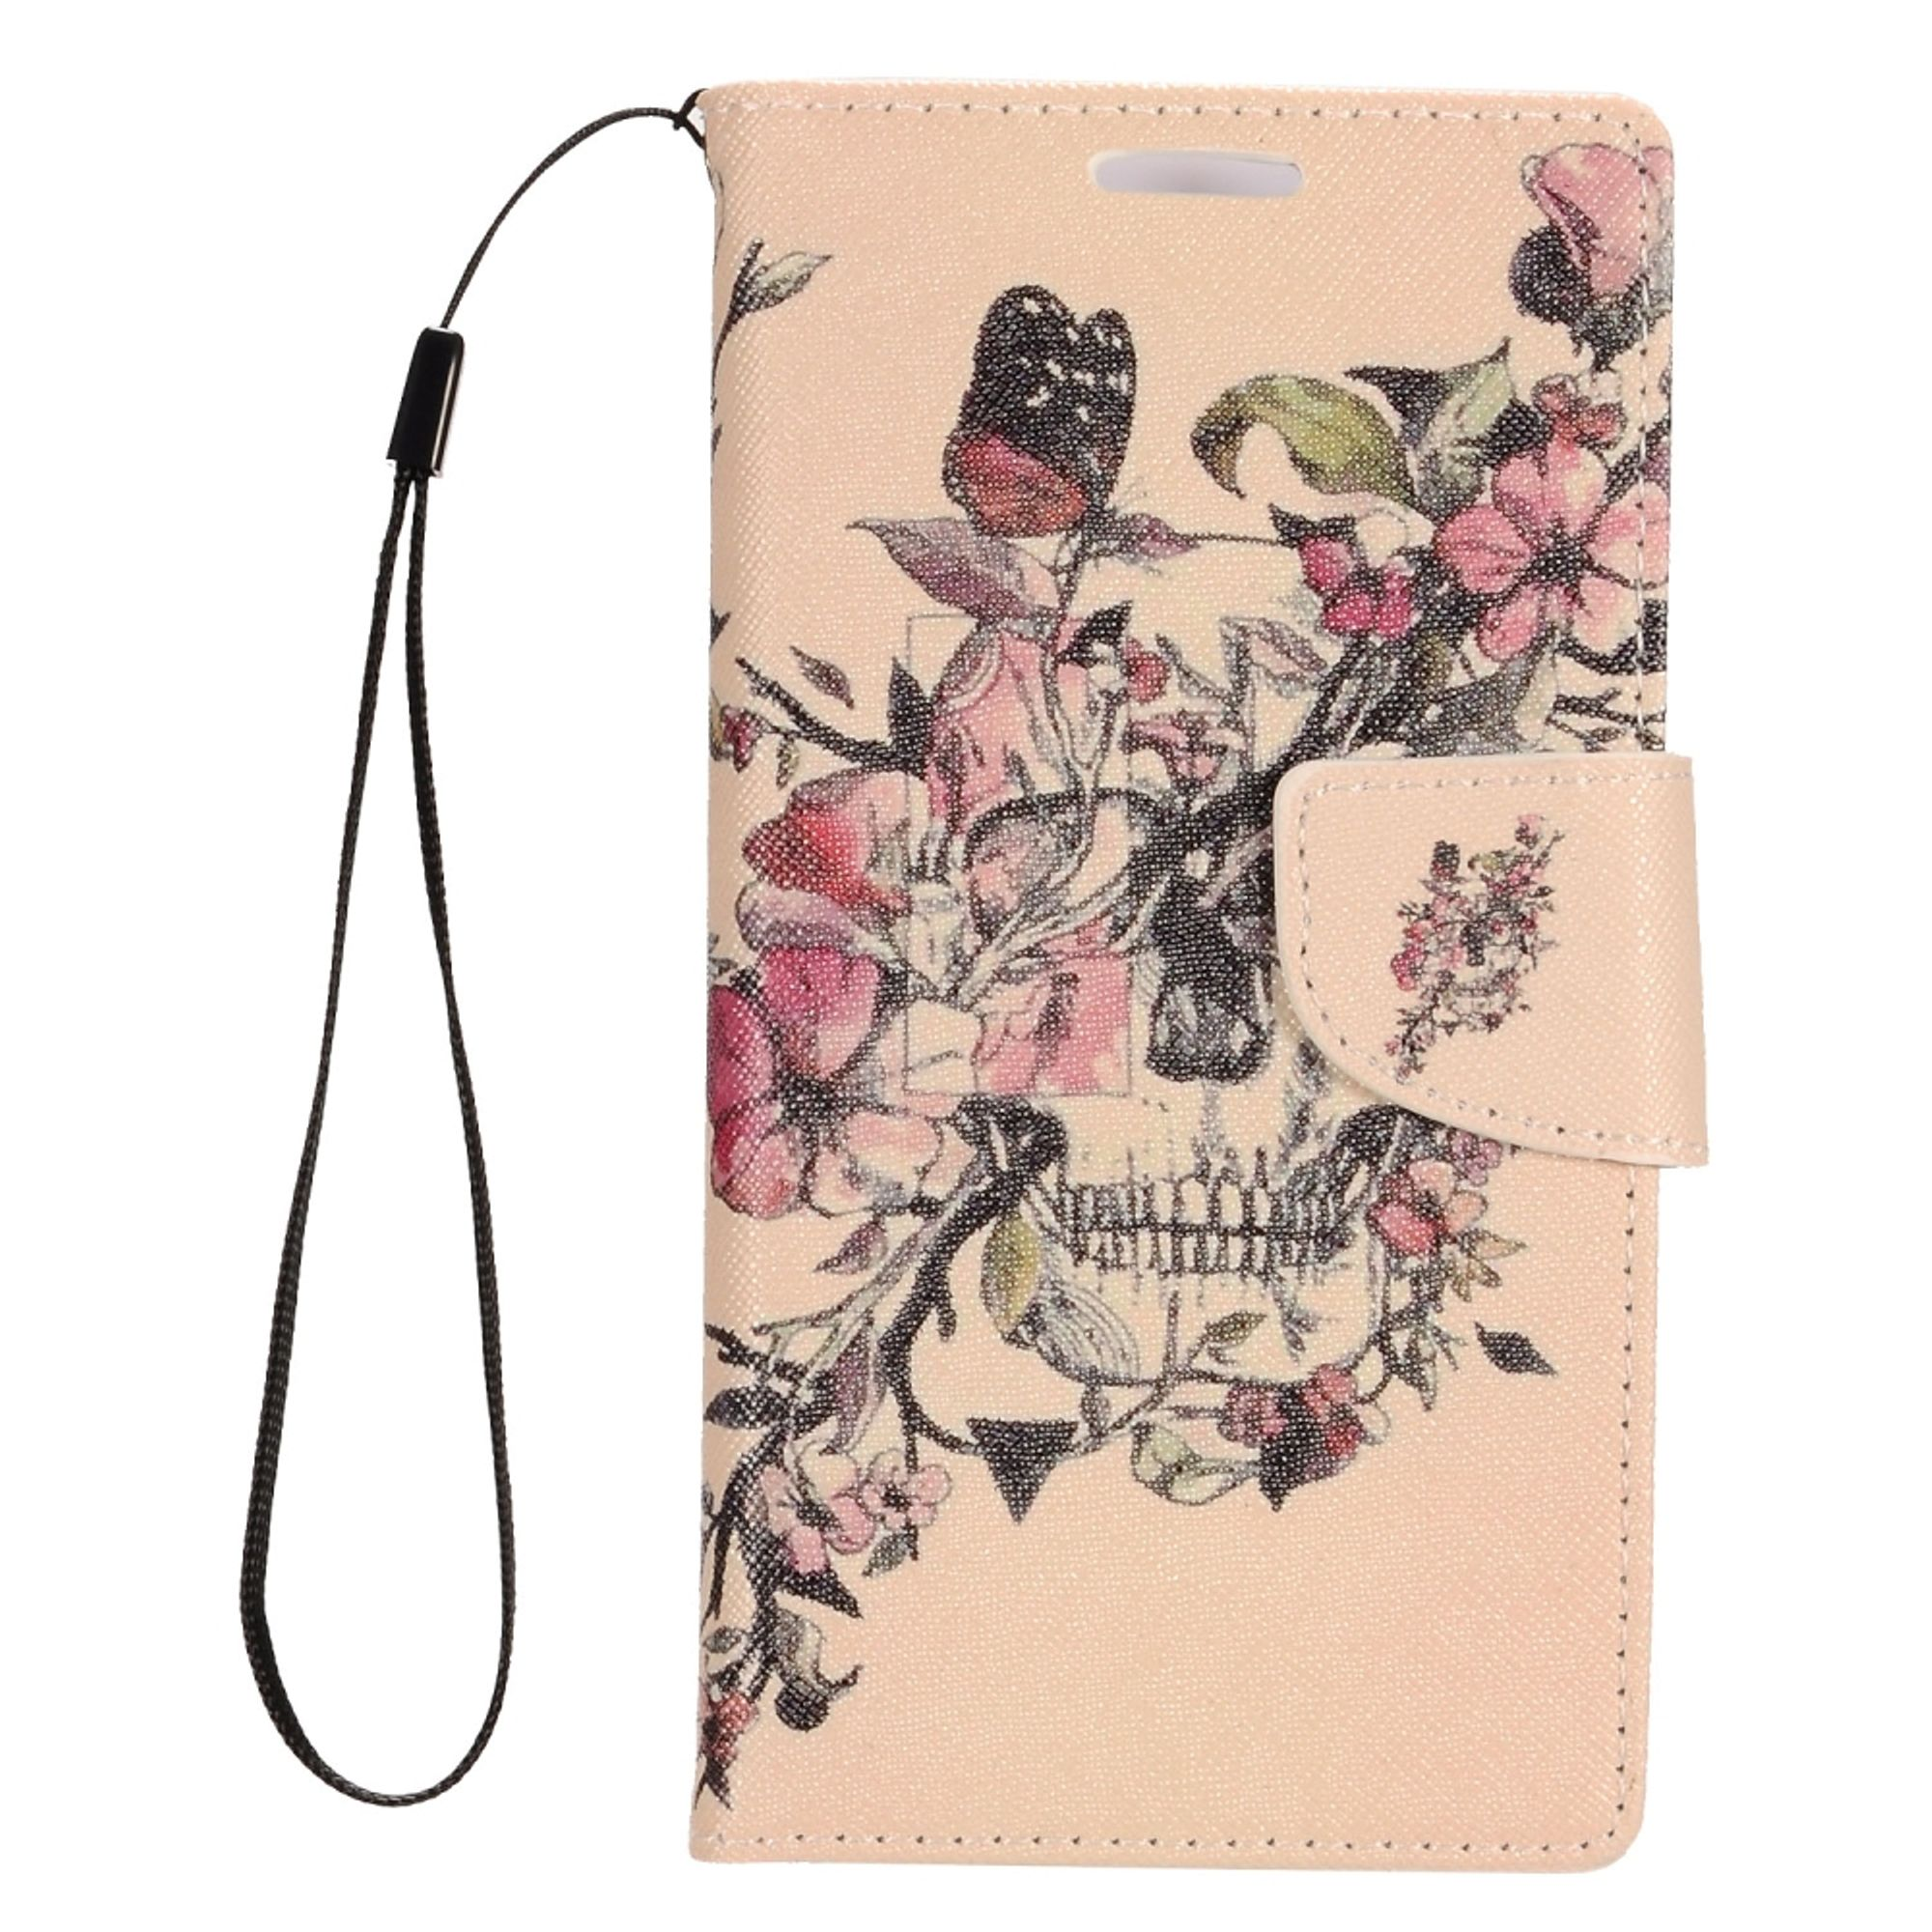 Alcatel Dawn Phone Case by Insten Blossom Flowers Stand Folio Flip Leather [Card Holder Slot] Wallet Flap Pouch Case Cover for Alcatel Dawn/Ideal/Streak